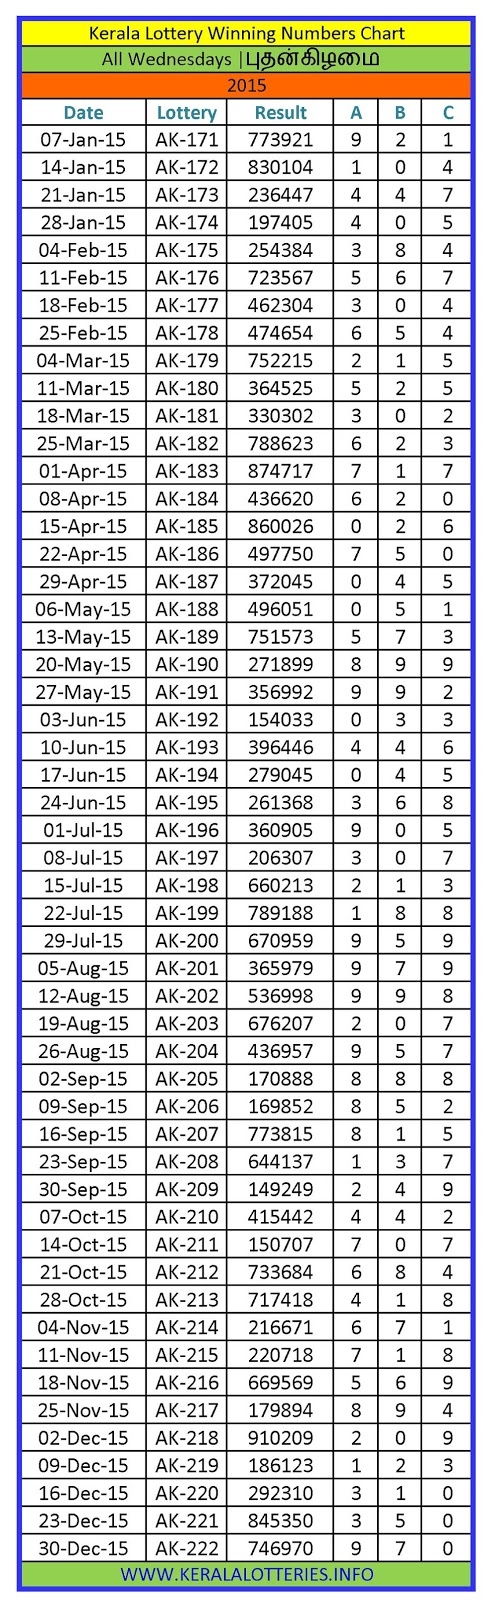 Kerala Lottery Winning Number Chart Wednesday -2015